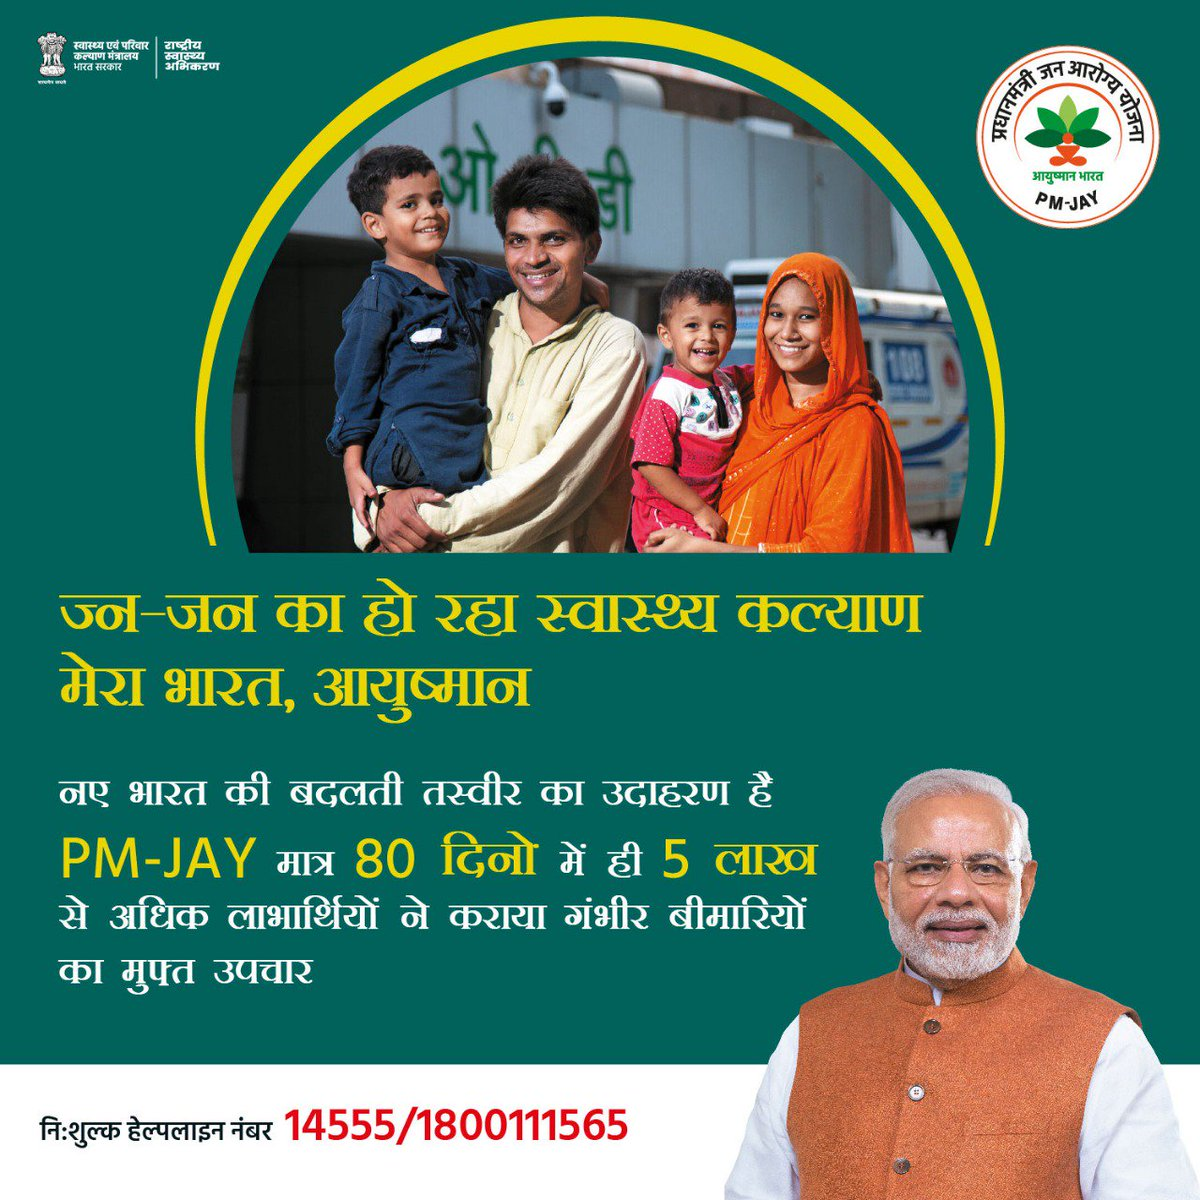 A major milestone for Ayushman Bharat!   In 80 days, over 5 lakh families got free healthcare services worth Rs. 700 crore.   We are continuously working towards creating a healthy India!